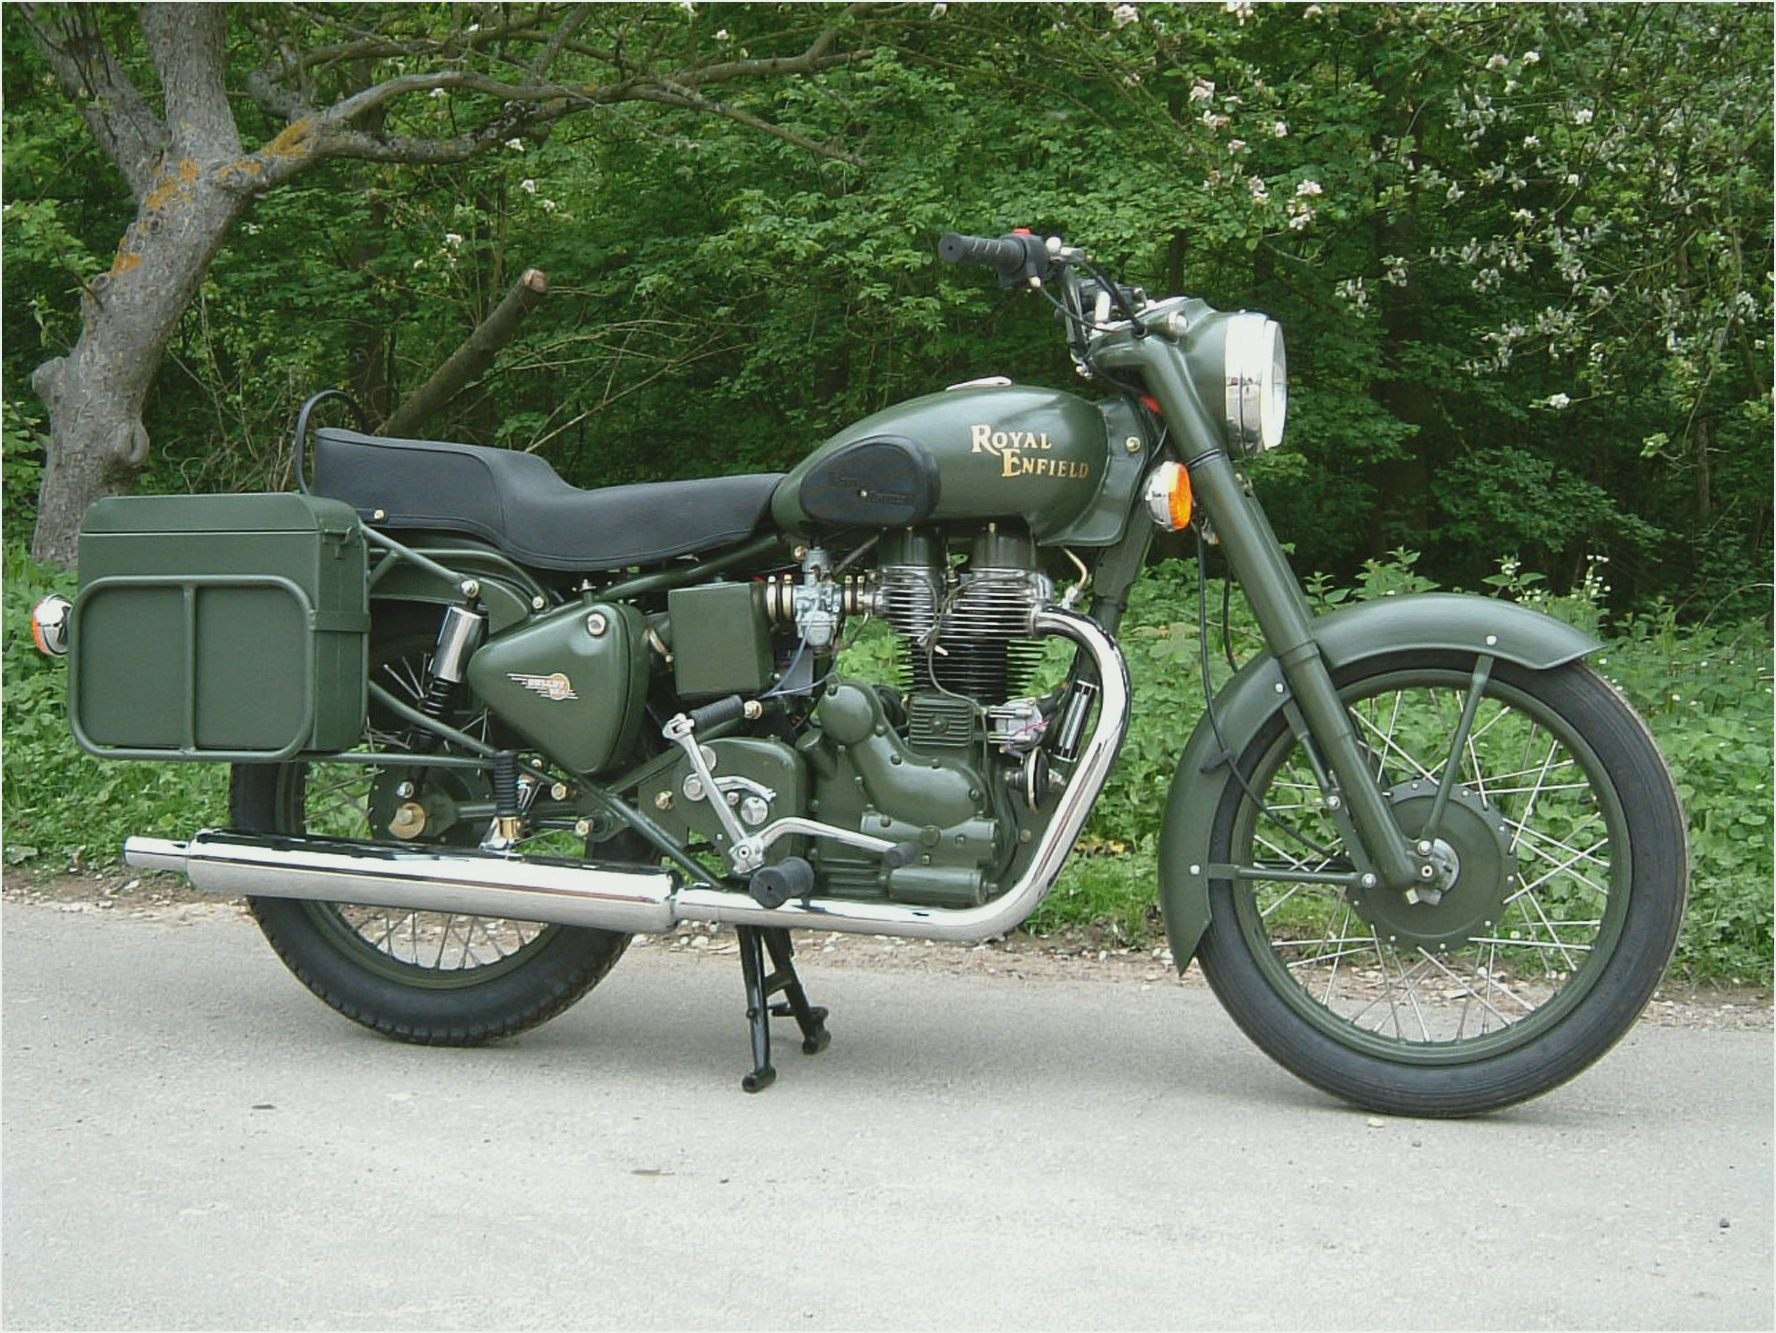 Royal Enfield Bullet 350 Army 1988 images #122583